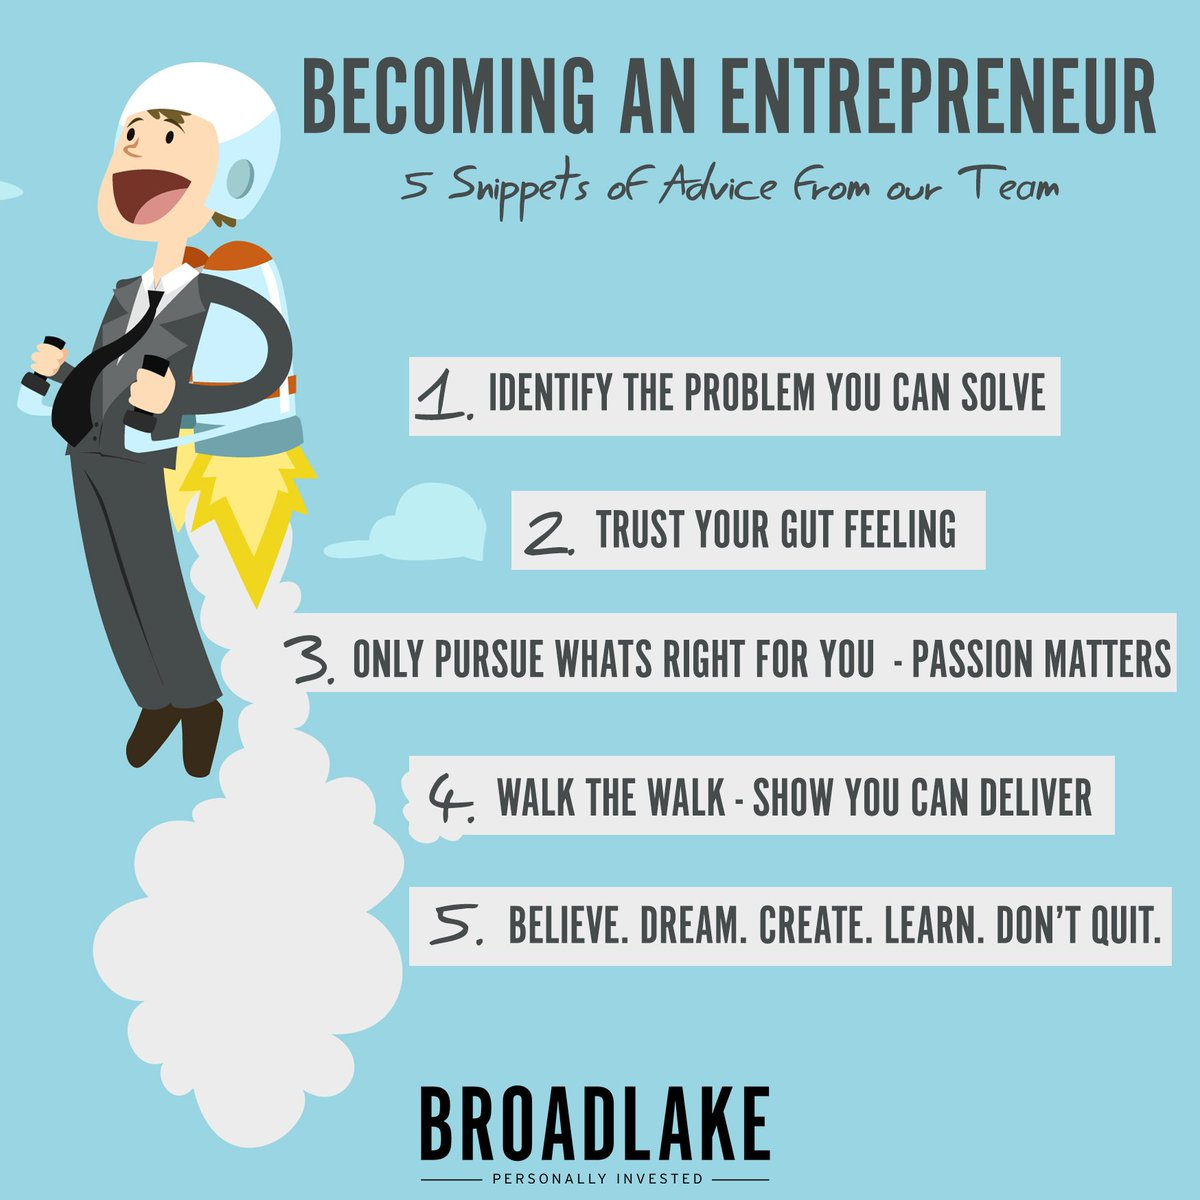 Our Advice to #Entrepreneurs: Try. Fail. Learn. Repeat.  #innovation  #entrepreneur #MakeYourOwnLane #GrowthHacking #infographic   #startup<br>http://pic.twitter.com/IiDk1KyvWj